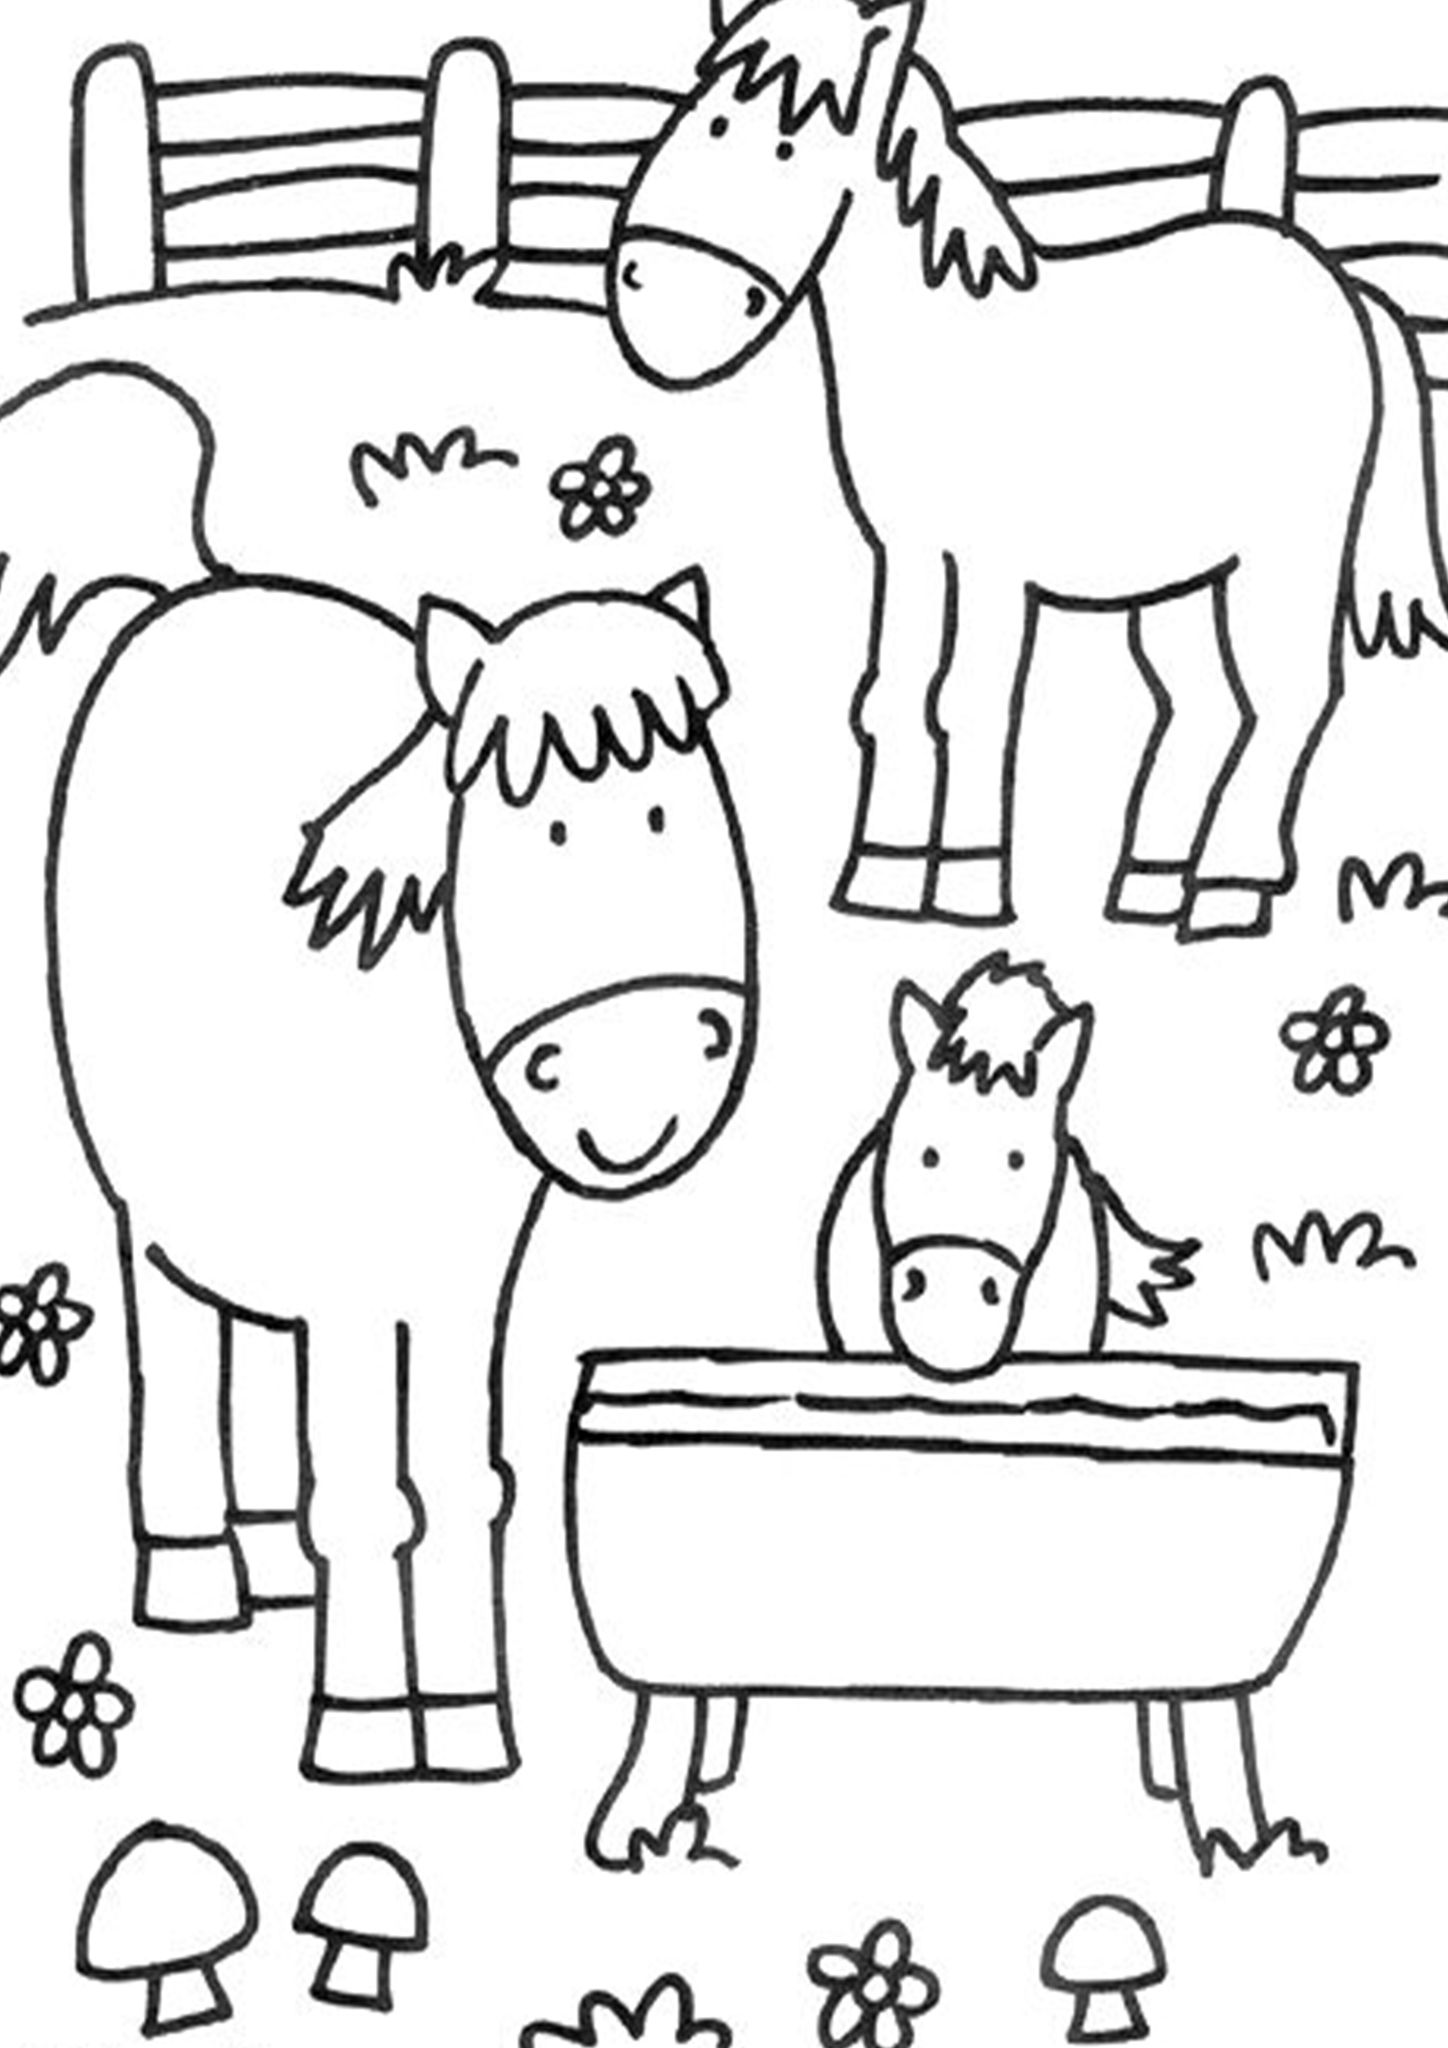 Free Easy To Print Farm Coloring Pages Farm Coloring Pages Farm Animal Coloring Pages Coloring Pages [ 2048 x 1448 Pixel ]